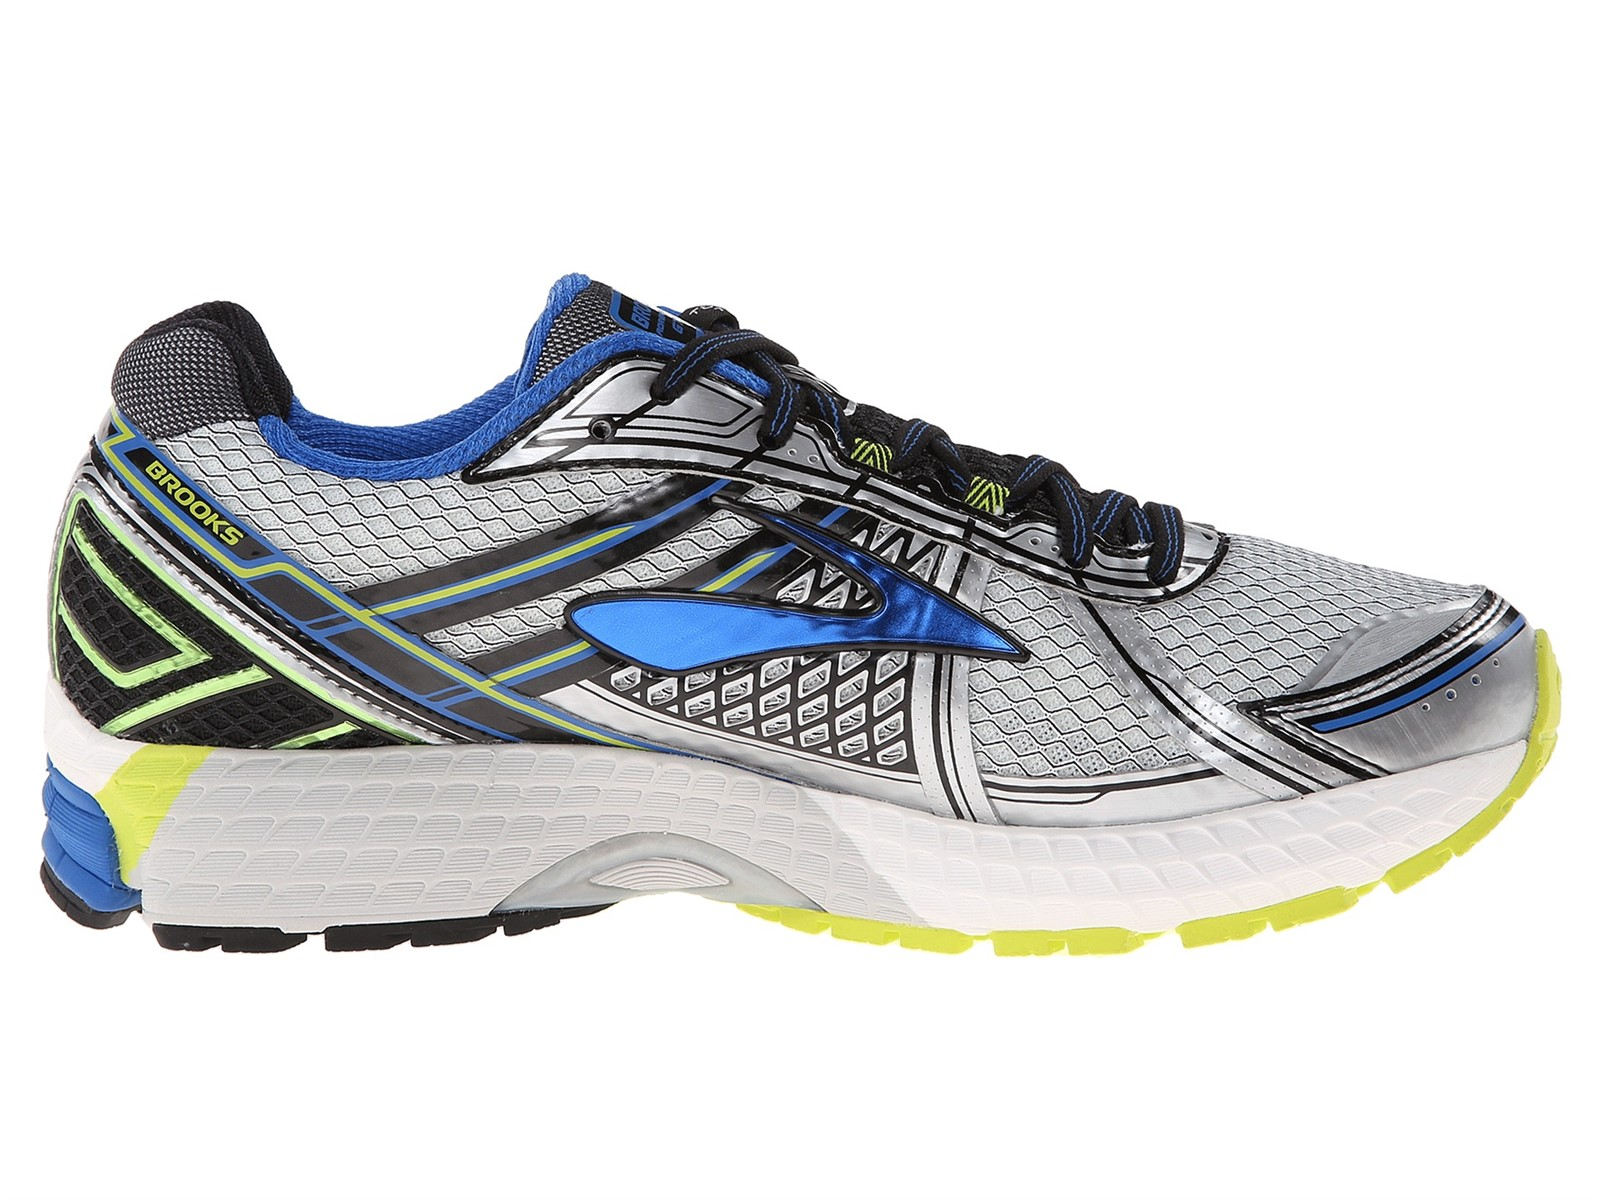 new adrenaline gts 15 running shoes mens size 11 5